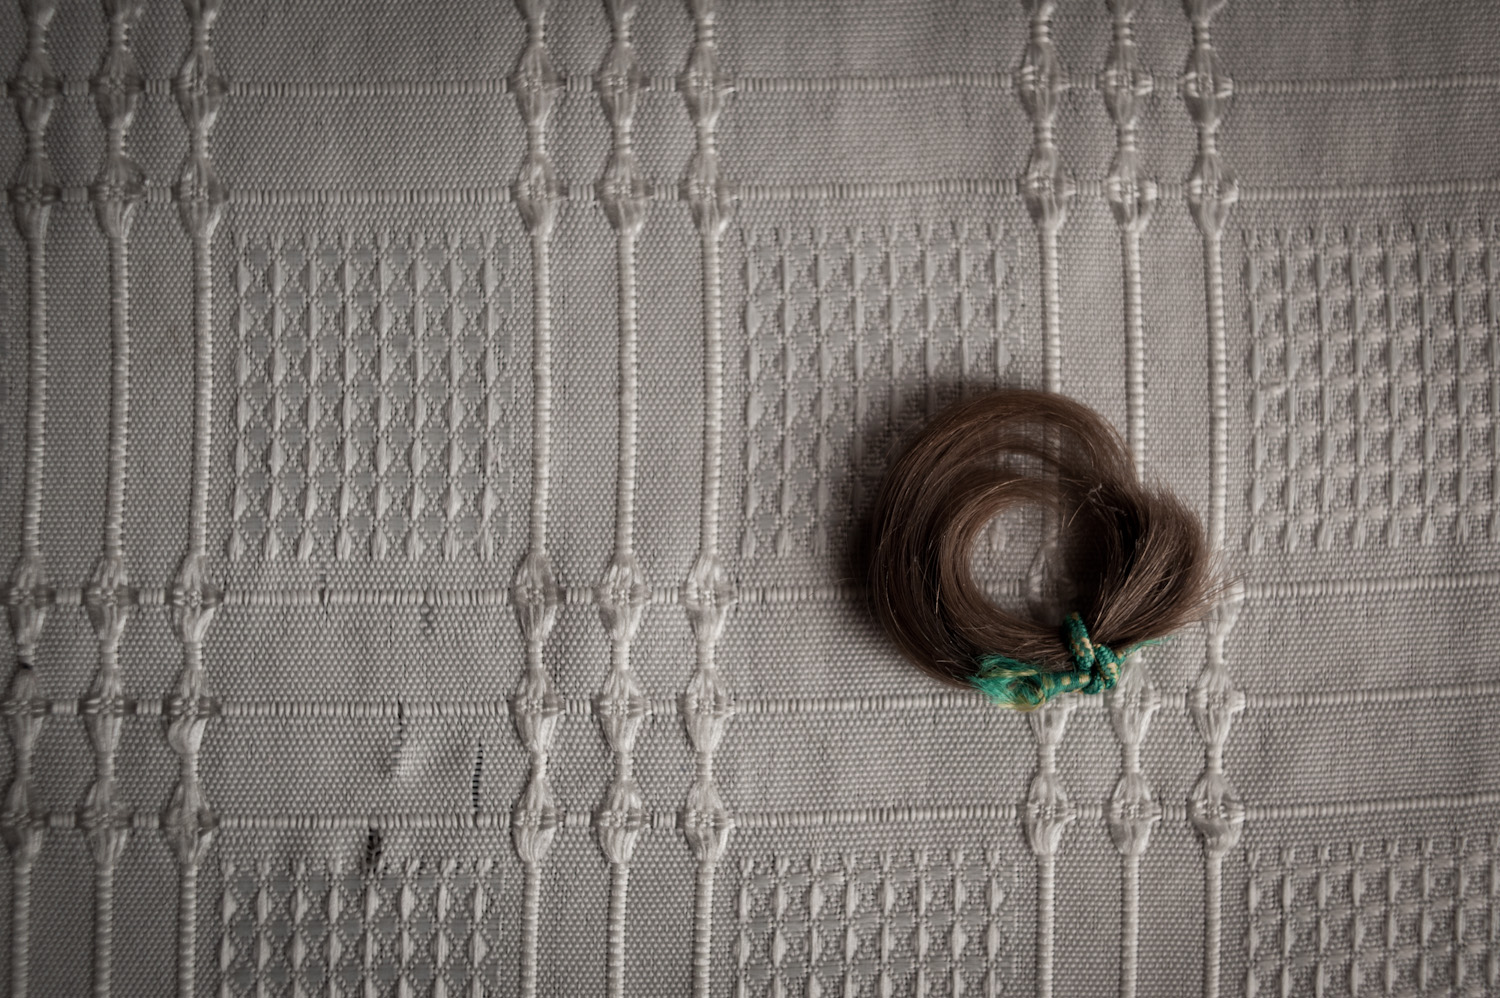 Araik's mother keeps a tuft of her son's hair from his childhood.